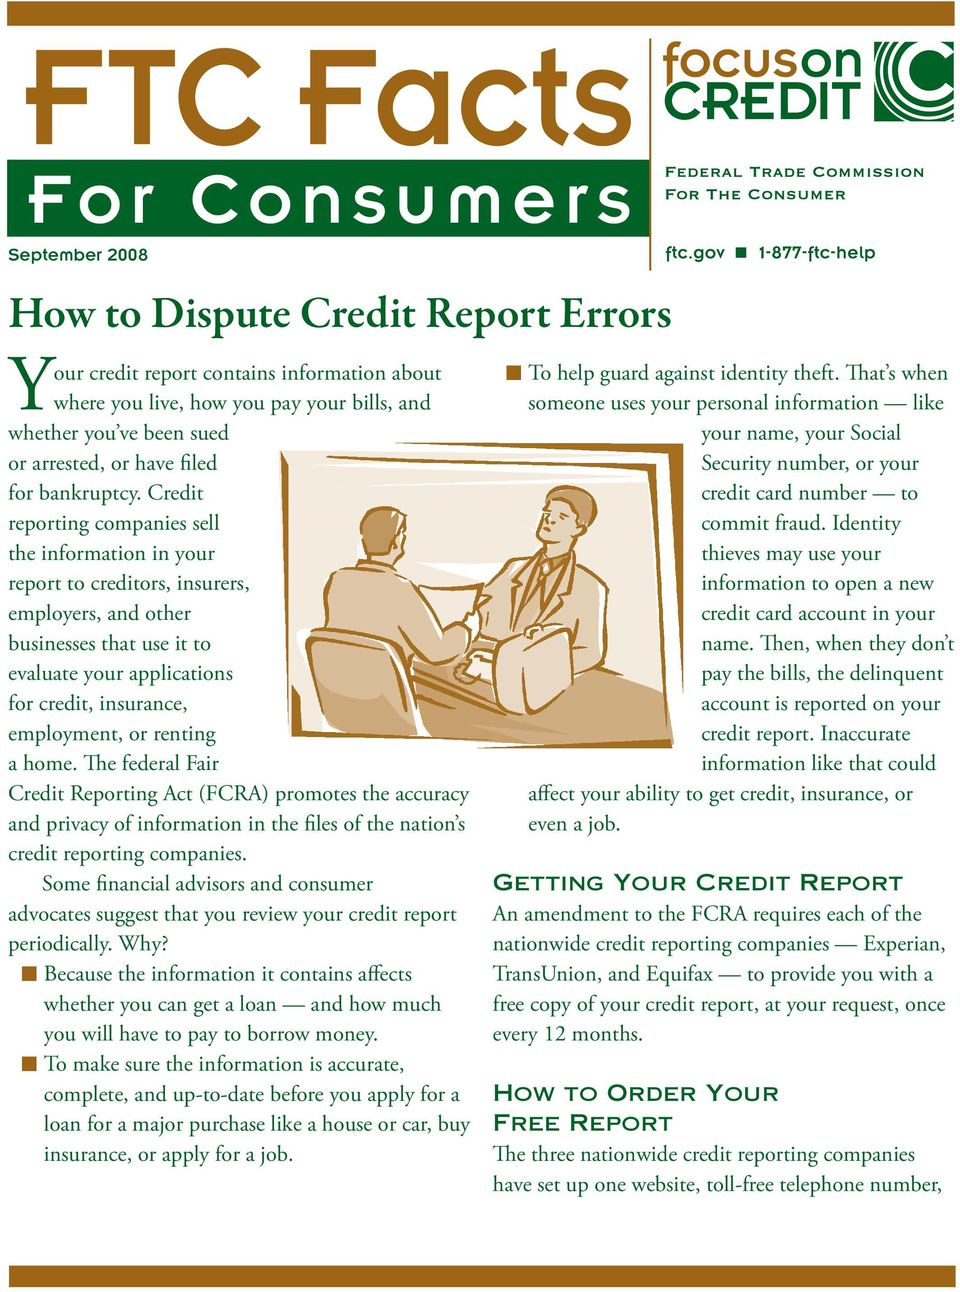 Credit reporting companies sell the information in your report to creditors, insurers, employers, and other businesses that use it to evaluate your applications for credit, insurance, employment, or